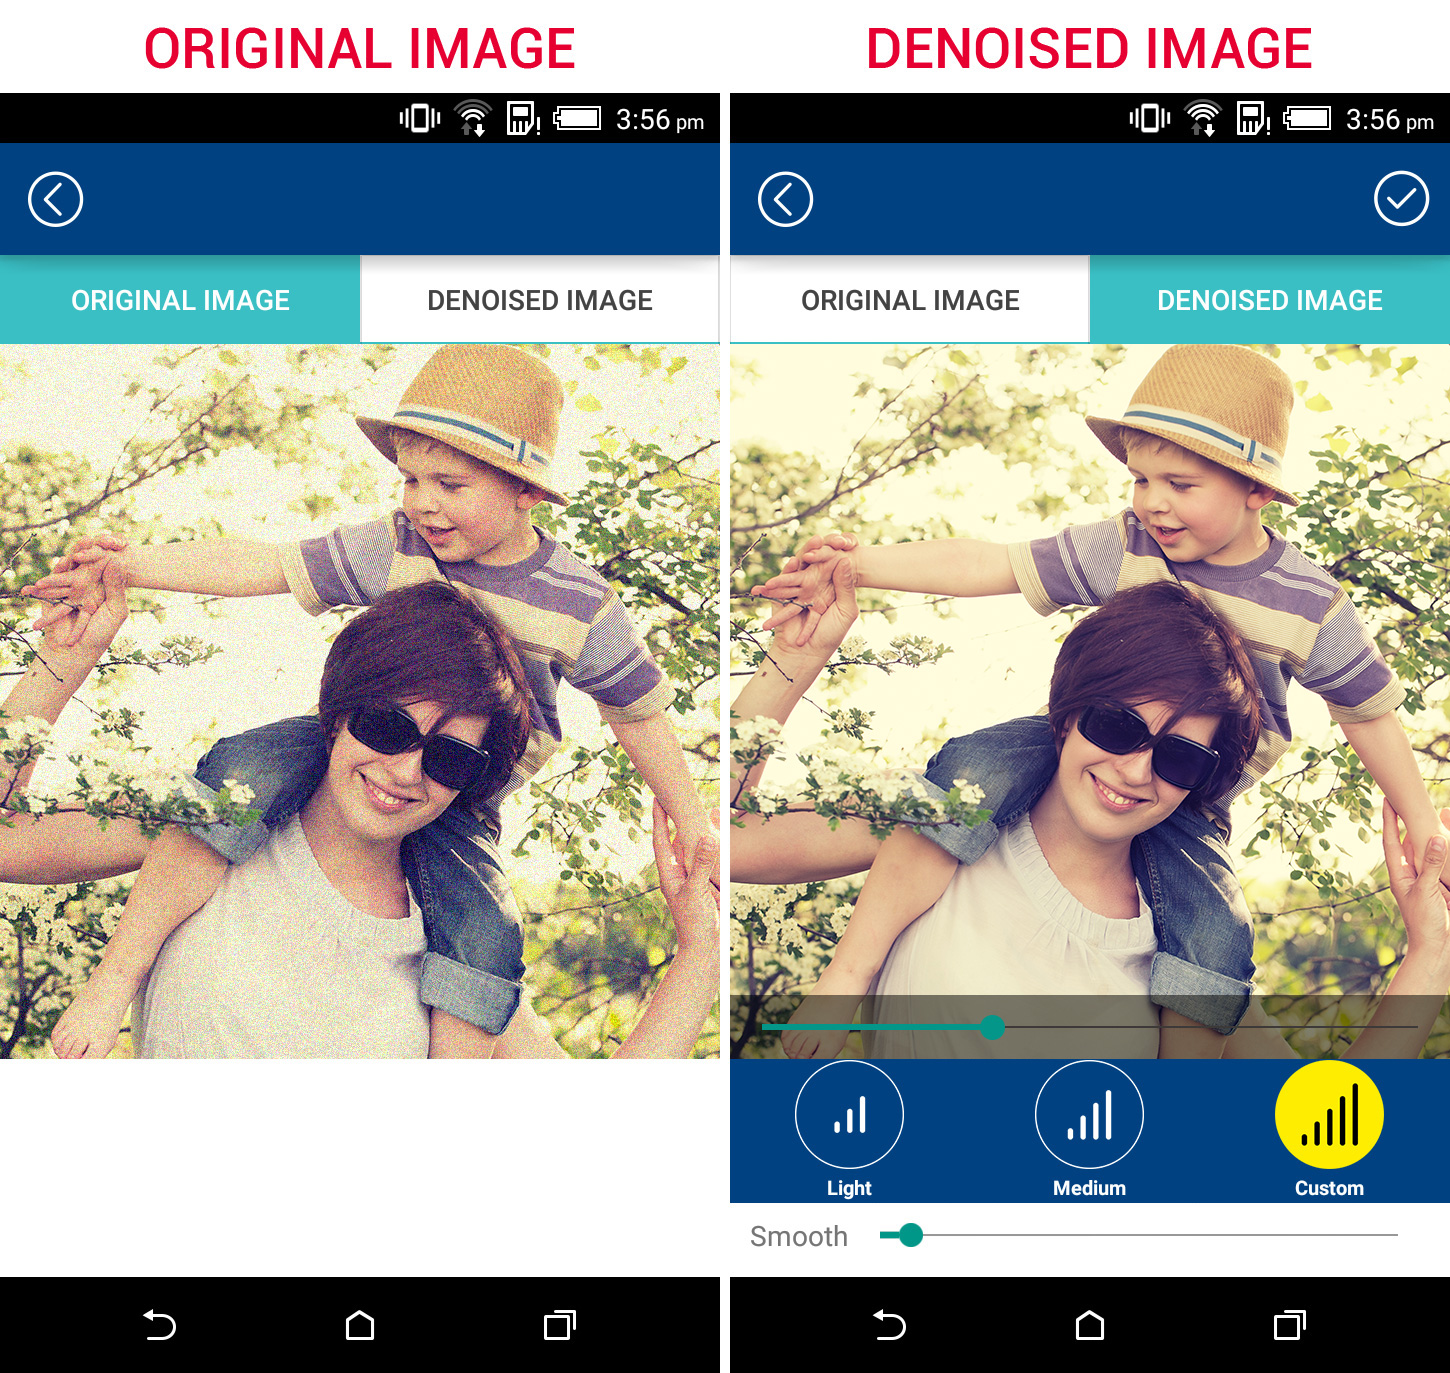 Remove Noise from Your Digital Photographs within Seconds - Image 2